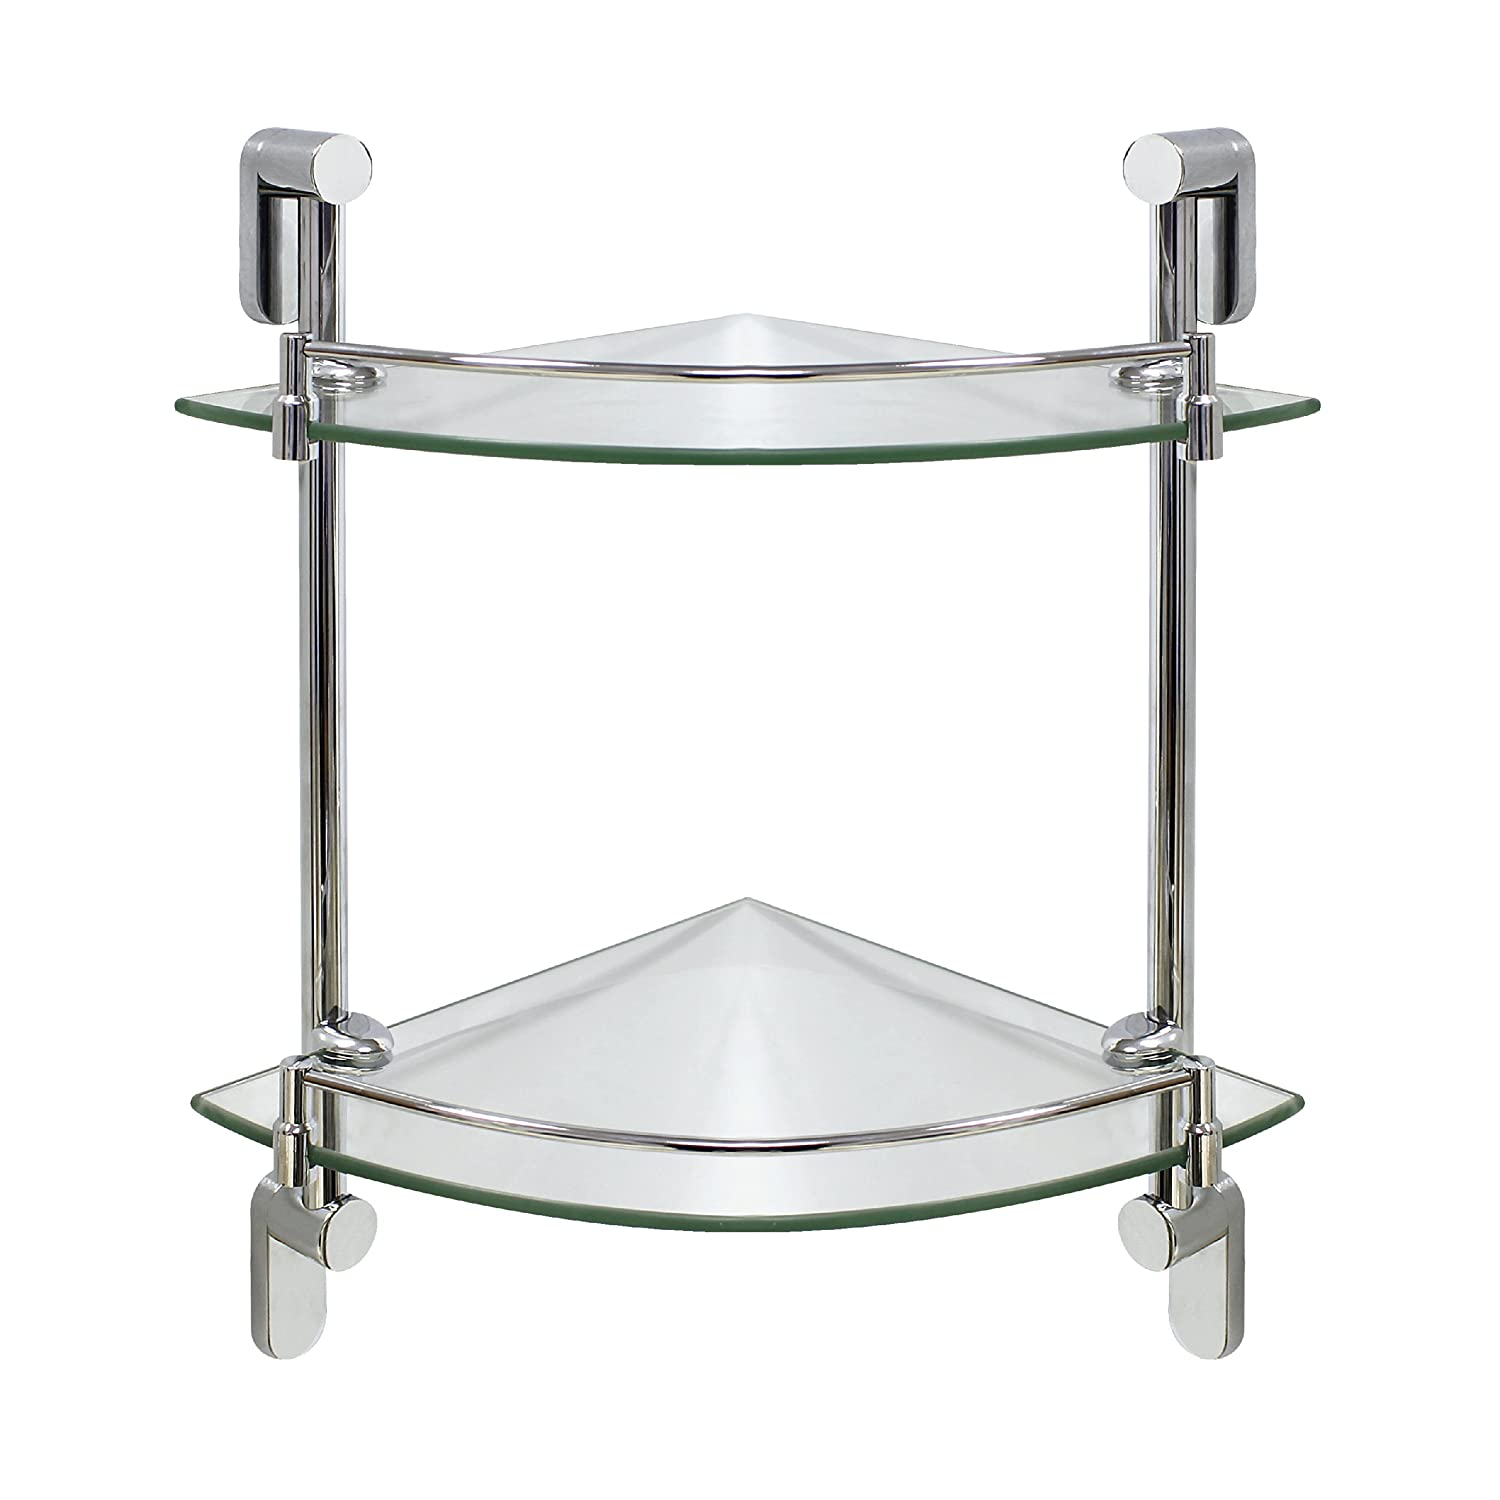 Amazon.com: MODONA Double Corner Glass Shelf with Rail – Polished ...